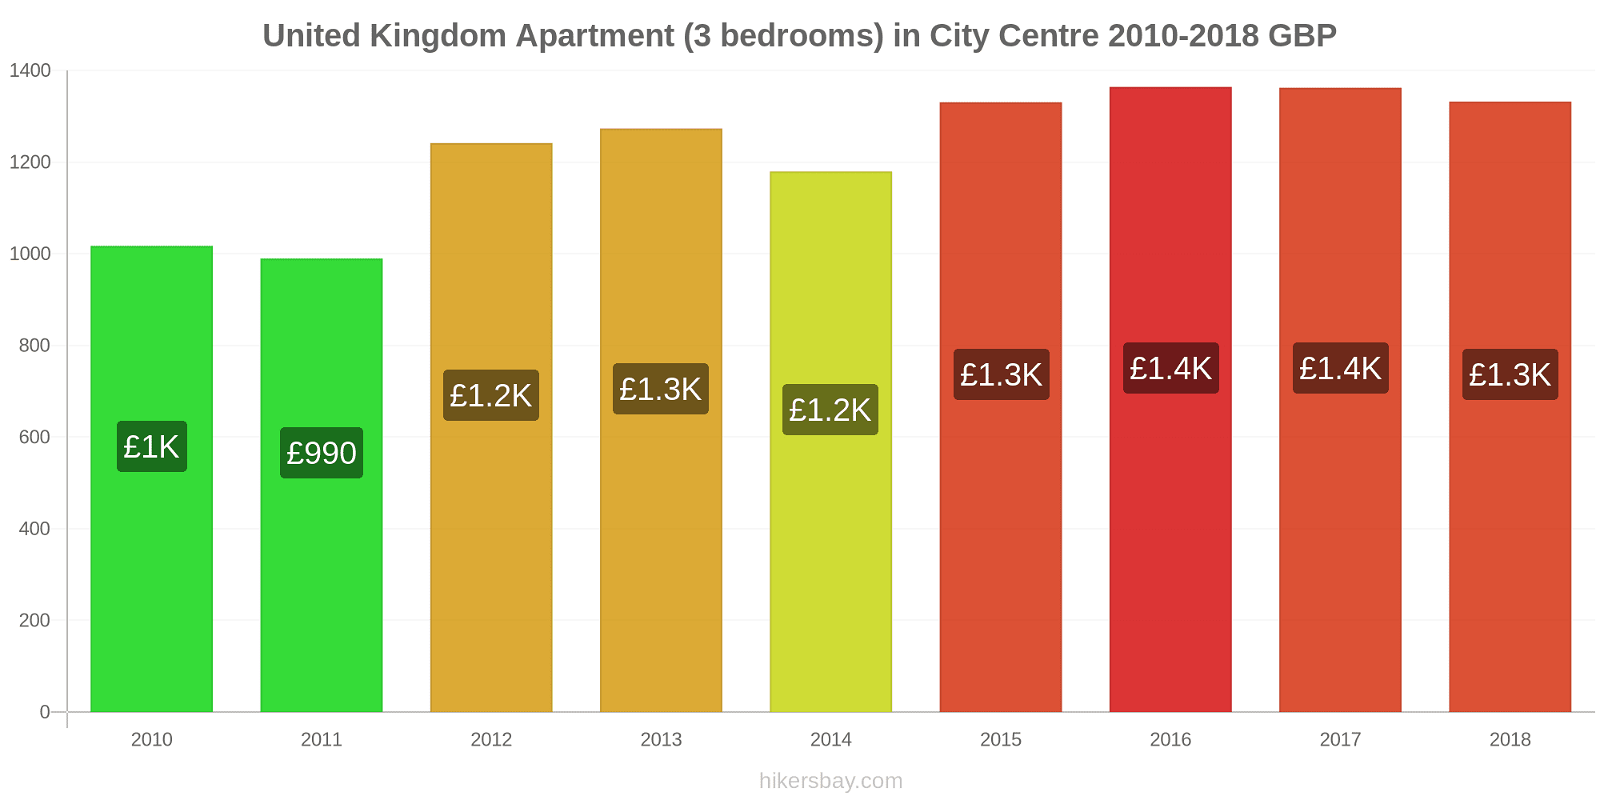 United Kingdom price changes Apartment (3 bedrooms) in City Centre hikersbay.com